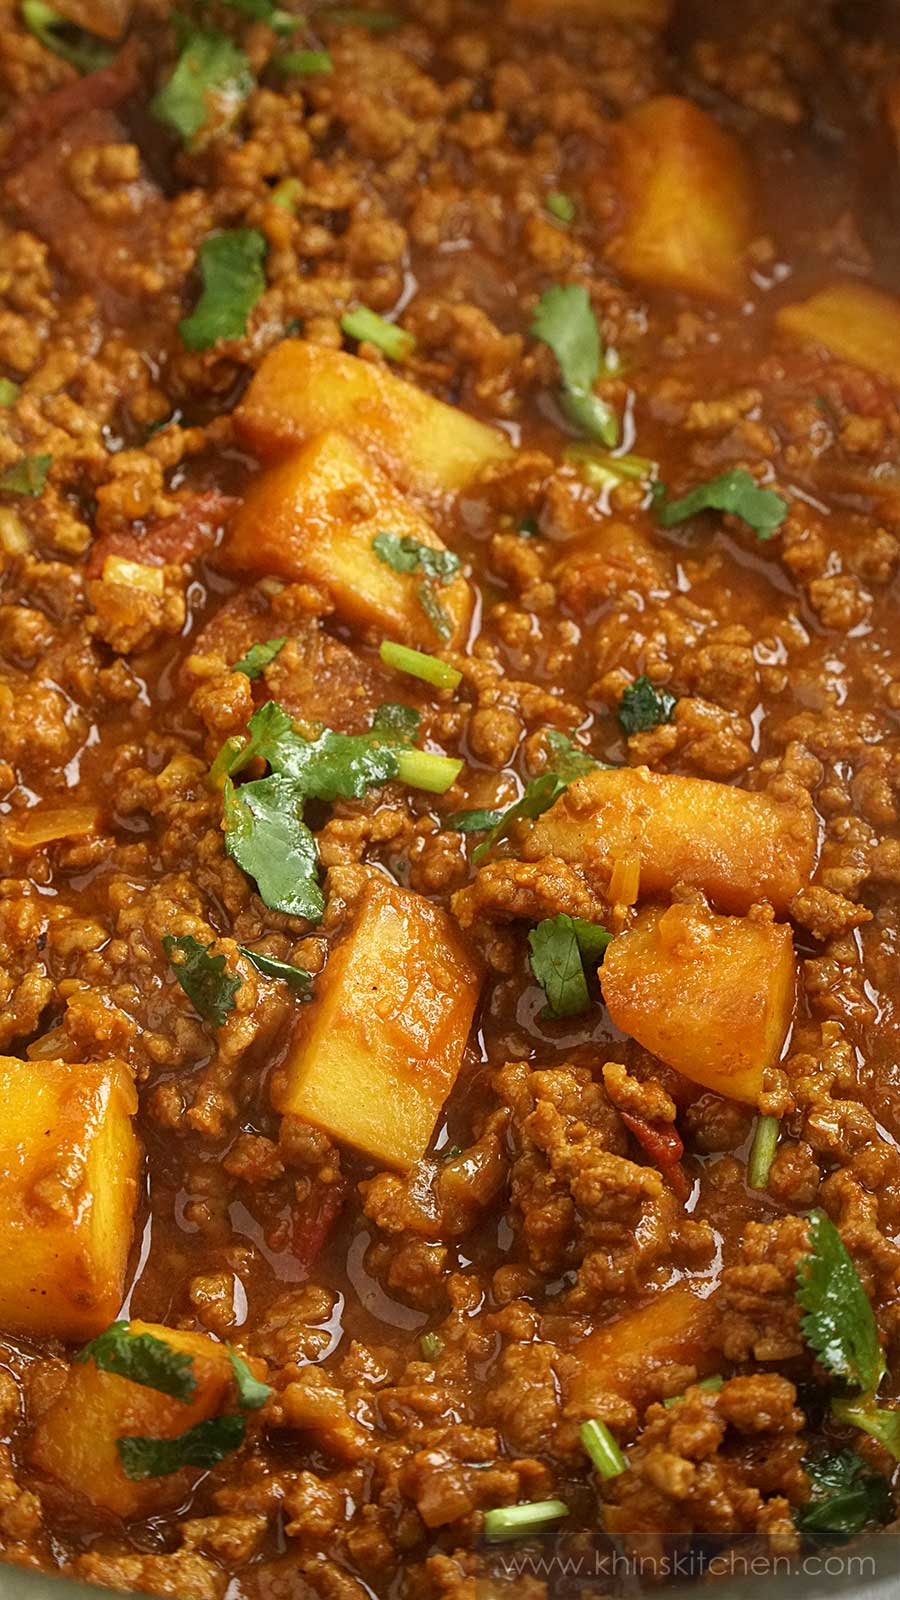 Close up shot of beef keema curry with small potato cubes, coriander.